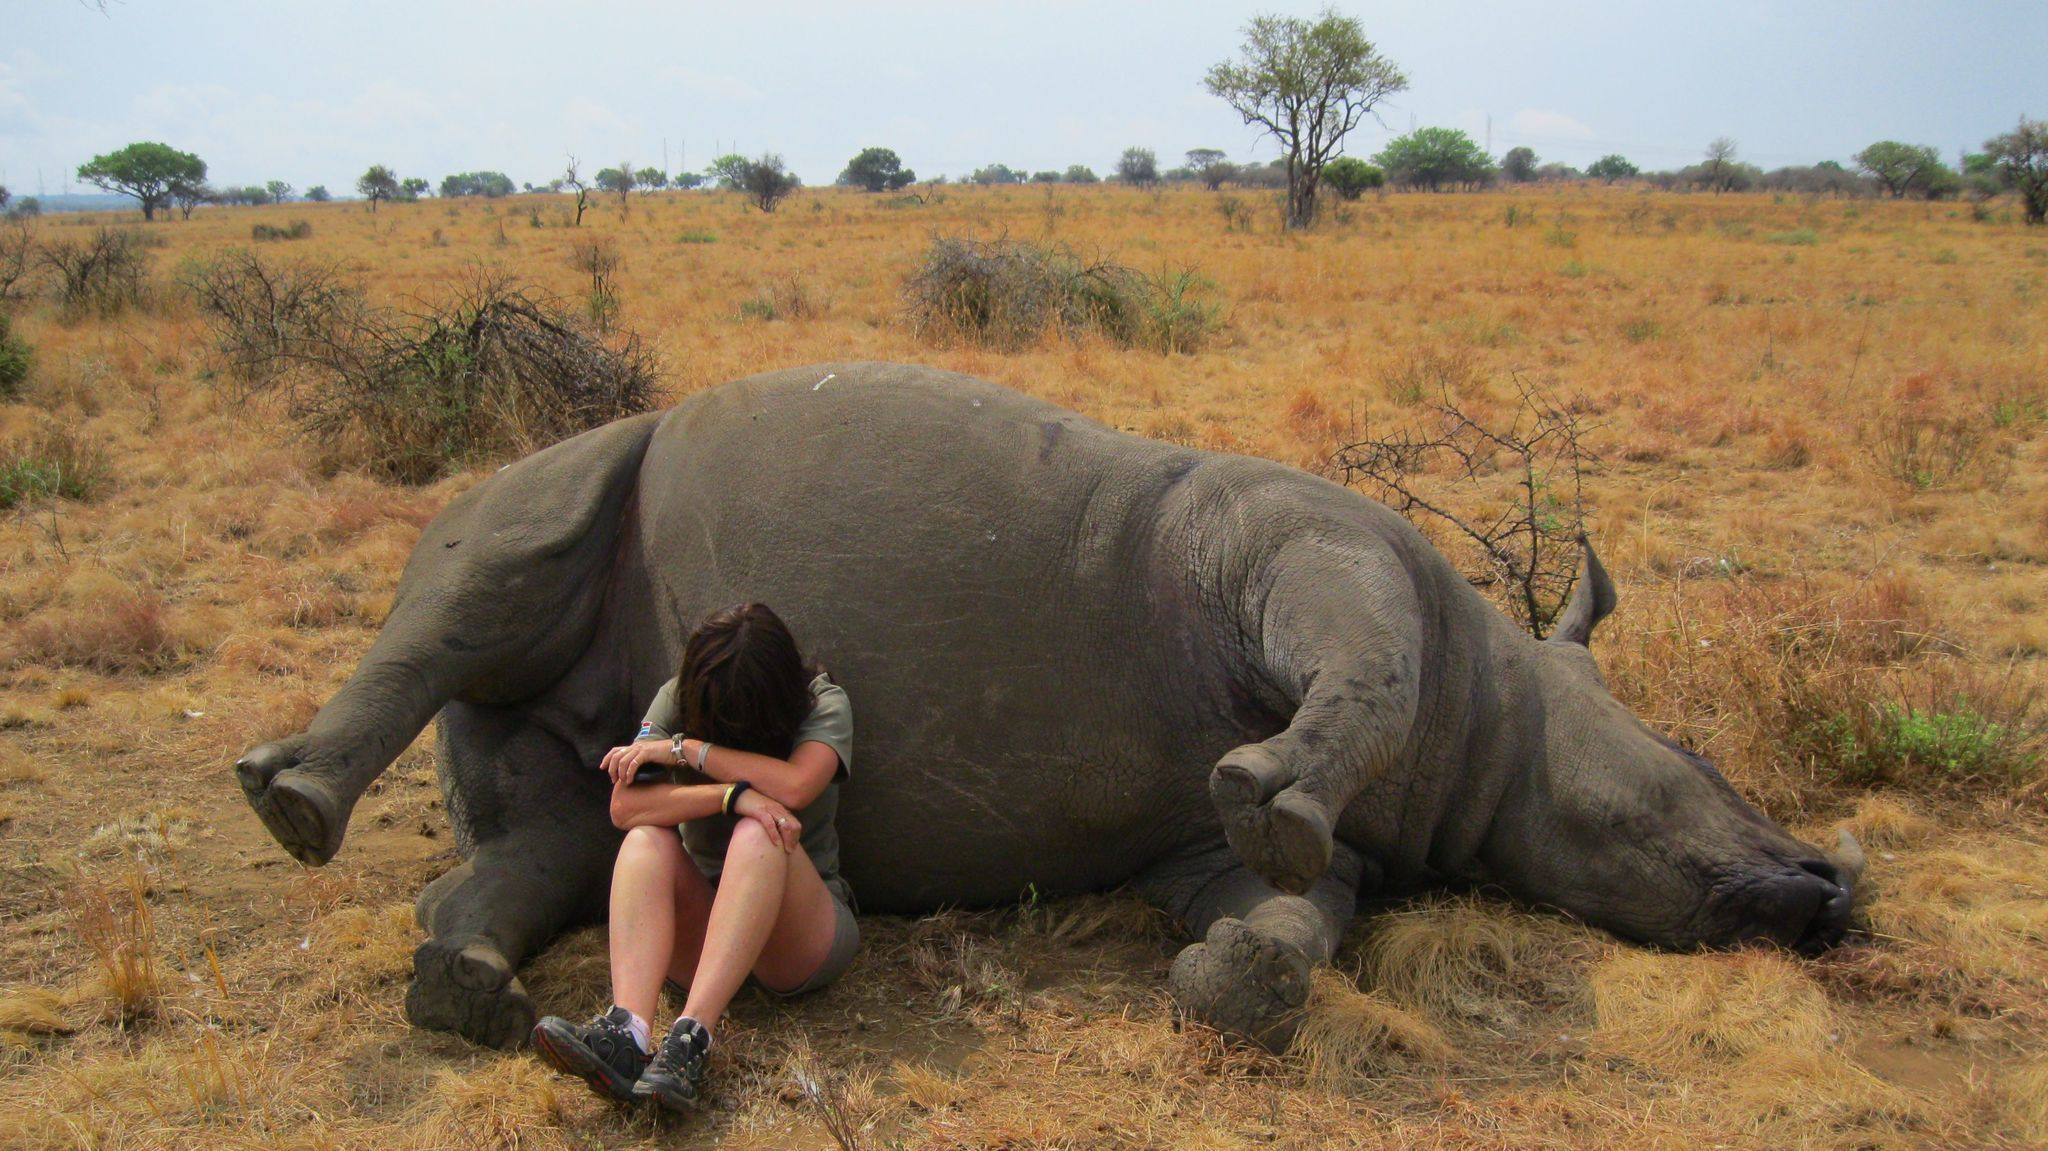 South African Architectural Designs: A Woman Fights To Save Her Rhinos Armed Only With Her